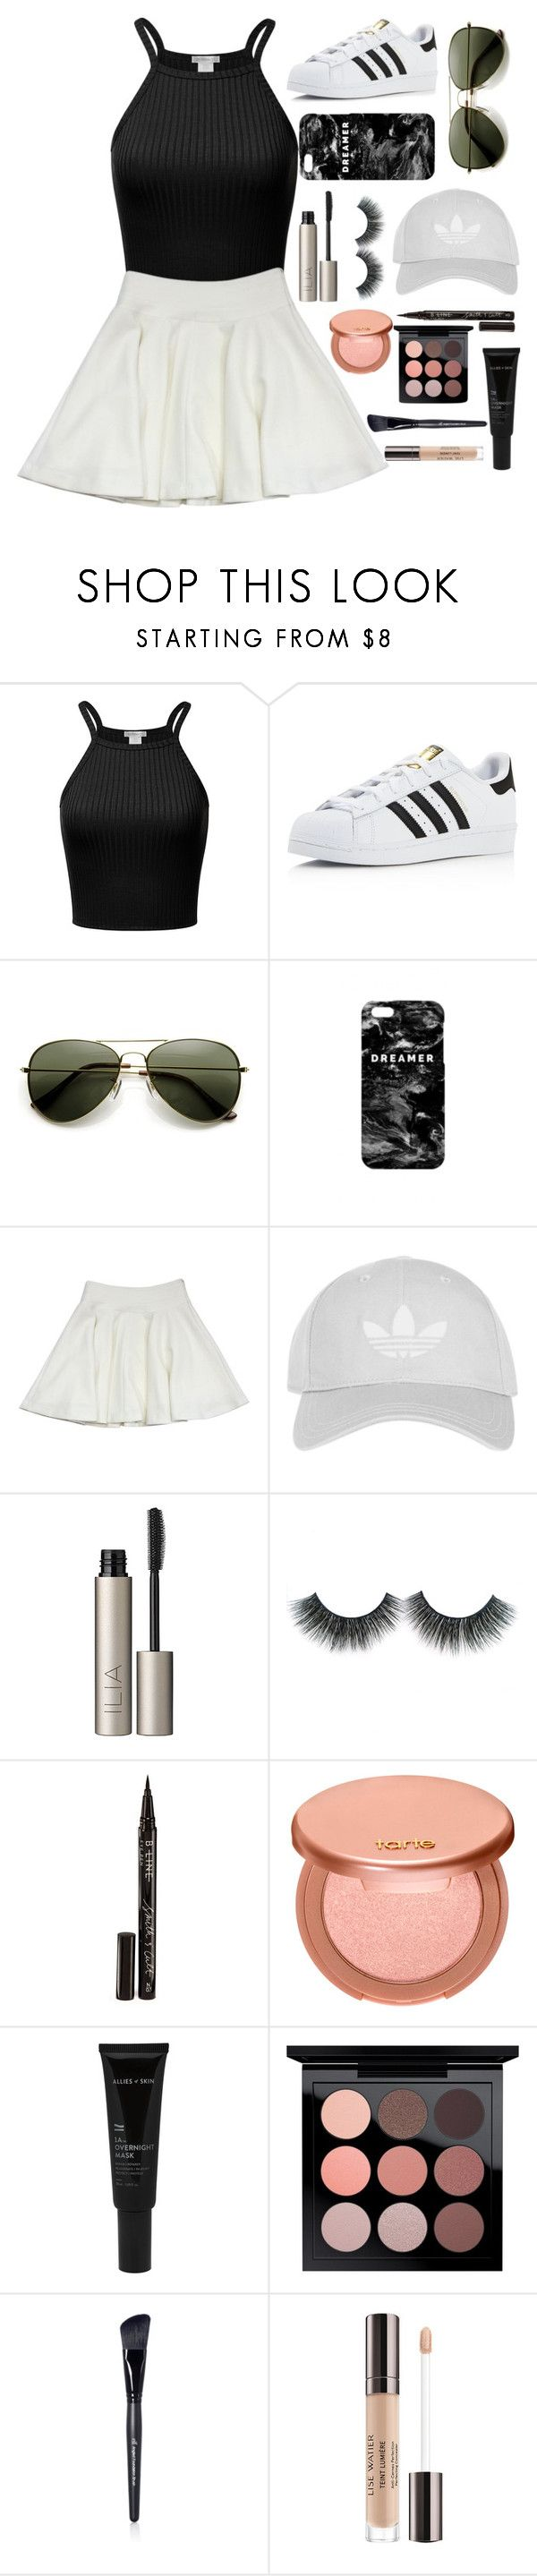 """""""aesthetically pleasing"""" by trxppy-gxd ❤ liked on Polyvore featuring adidas, Mr. Gugu & Miss Go, Milly, Topshop, Ilia, Smith & Cult, tarte, Allies of Skin, MAC Cosmetics and Lumière"""